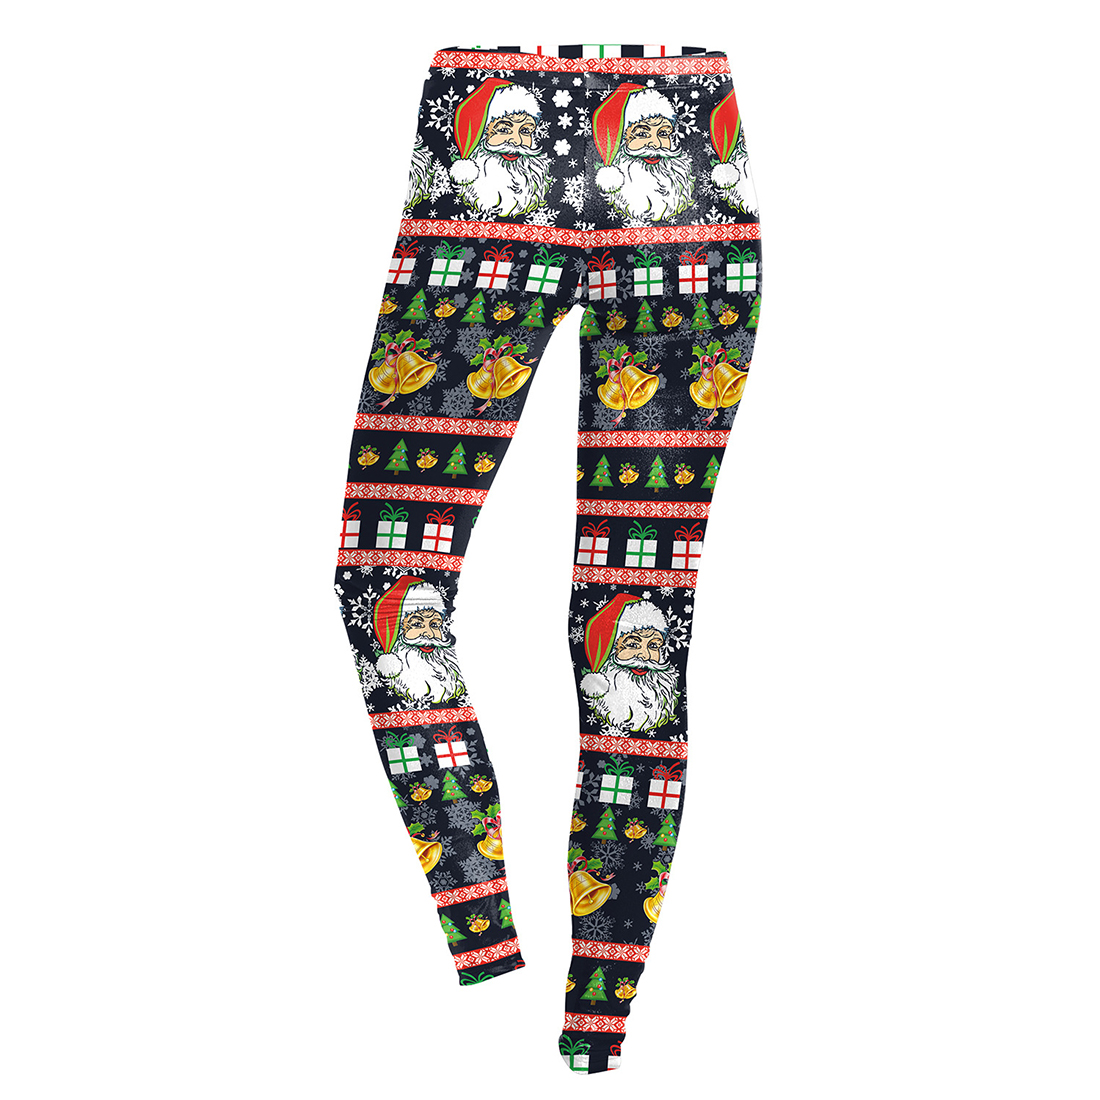 Marry Christmas Leggings Women Workout Autumn Fitness 3D Print Xmas Leggins Women Santa Claus Pants snowflake Print ...